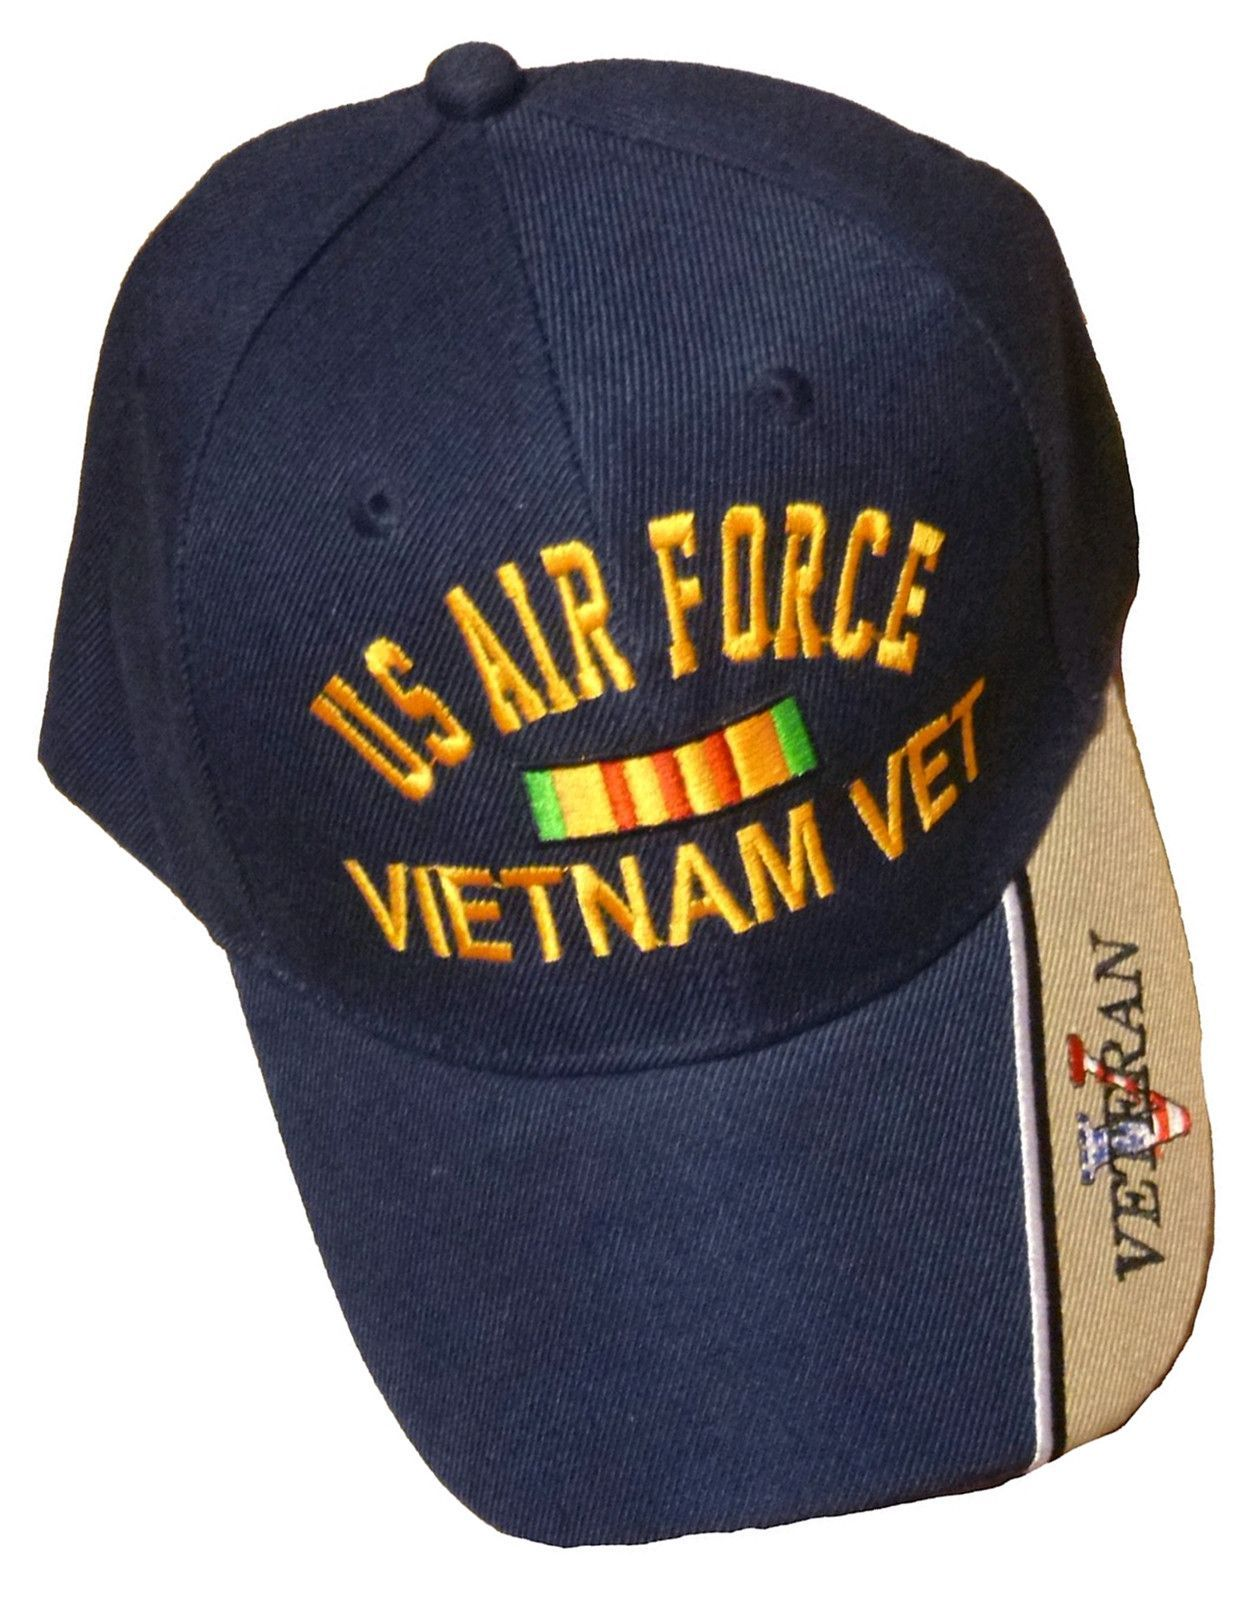 5d8b1cafa2 US Air Force Vietnam Vet Baseball Cap Blue and Tan Embroidered Military  Logo Veteran Hat